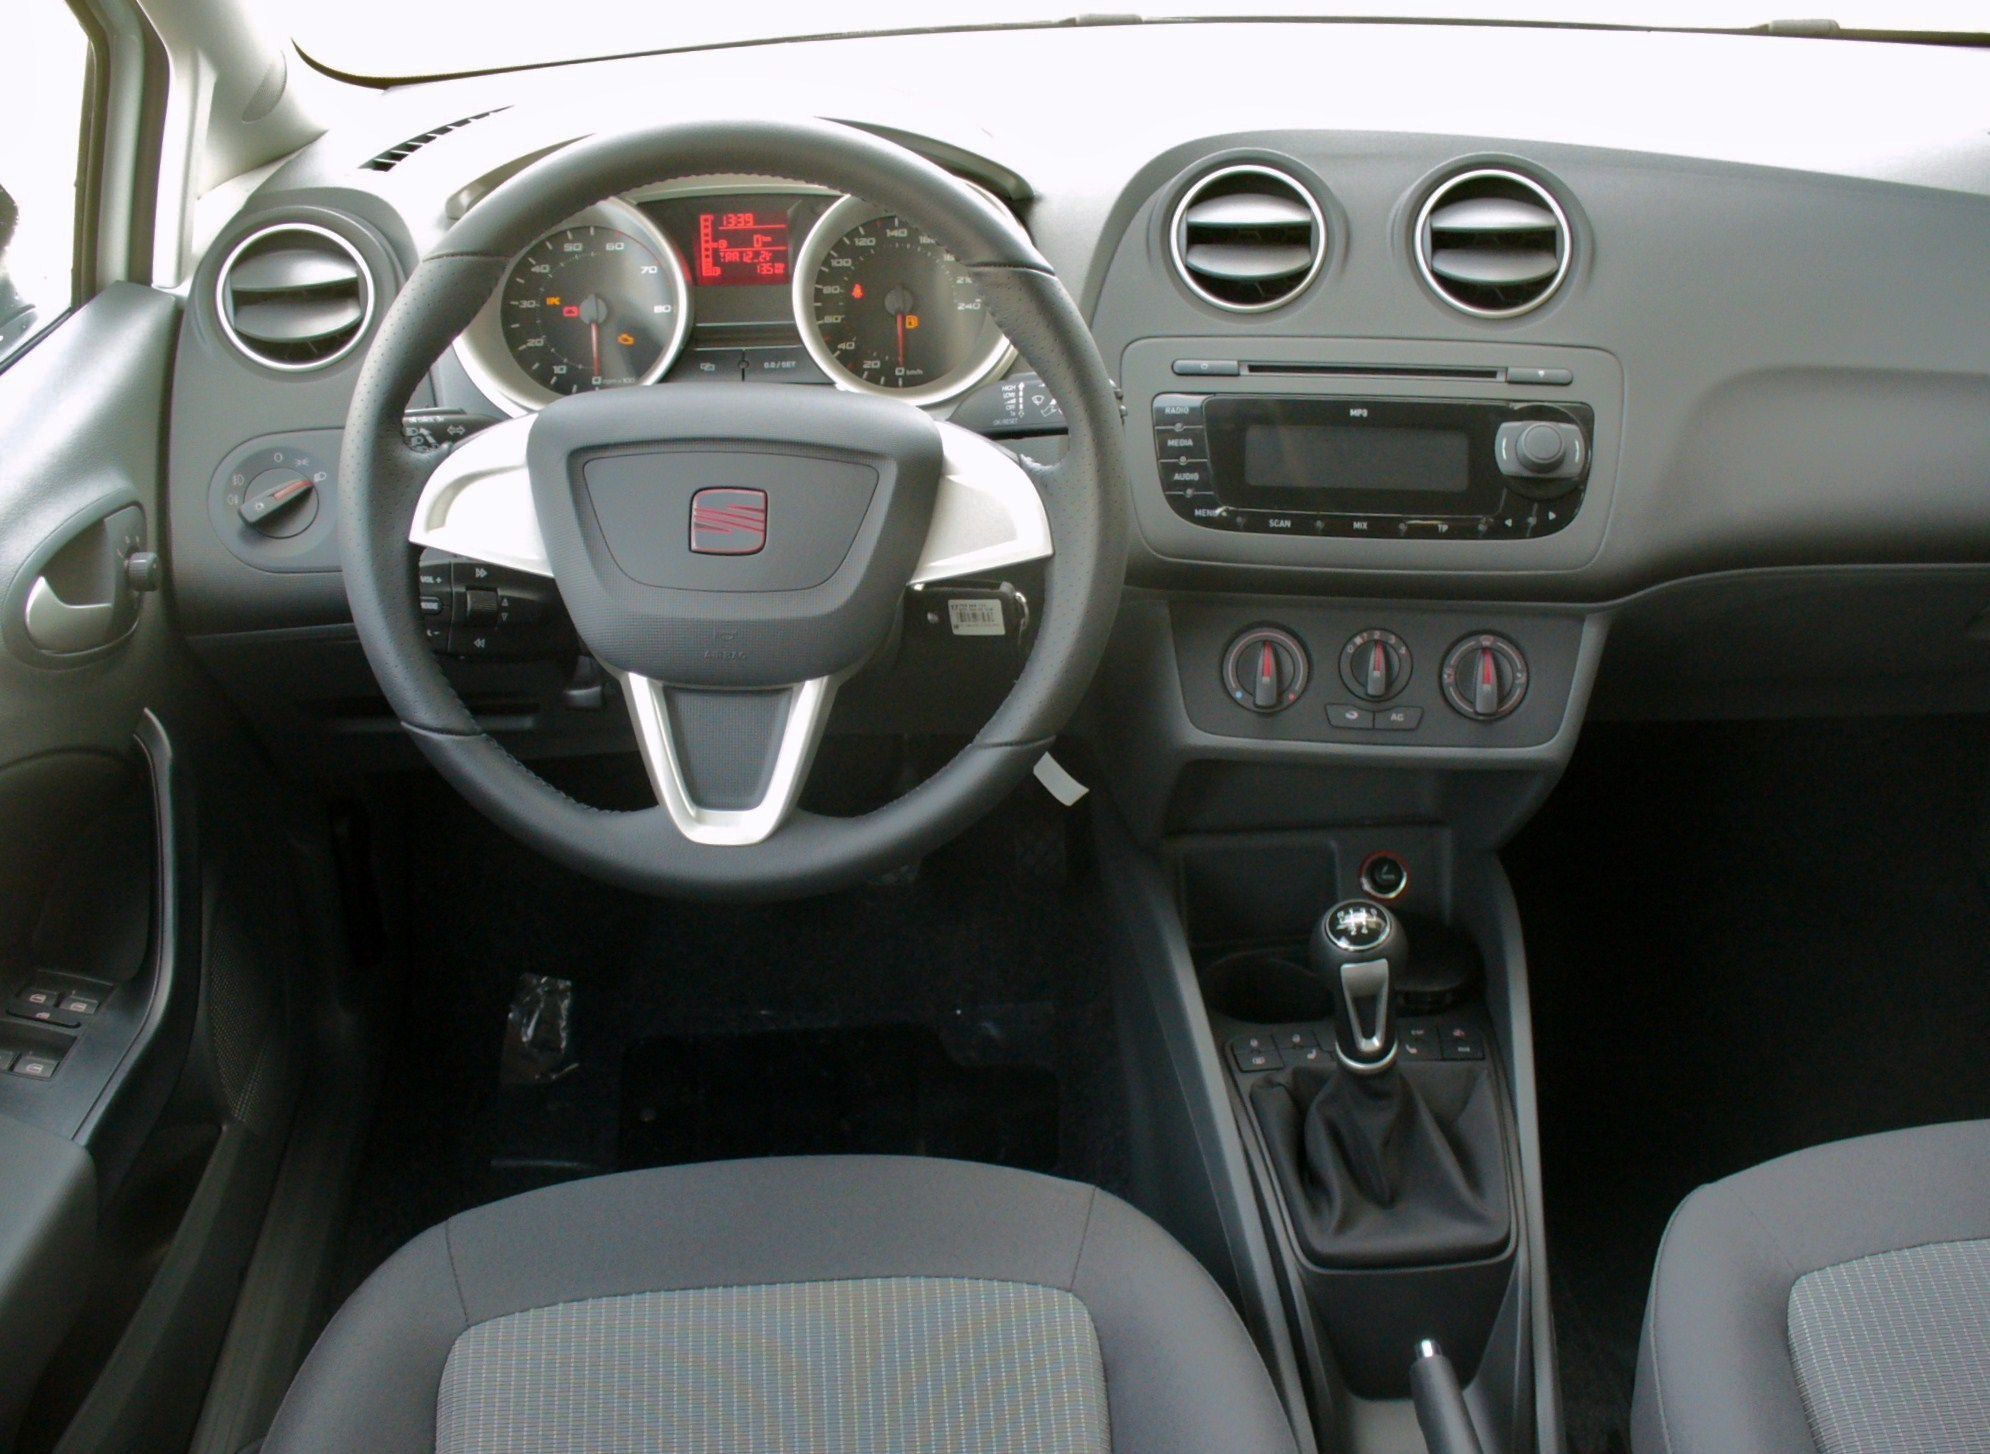 file seat ibiza 6j st 1 4 style candywei interieur jpg wikimedia commons. Black Bedroom Furniture Sets. Home Design Ideas